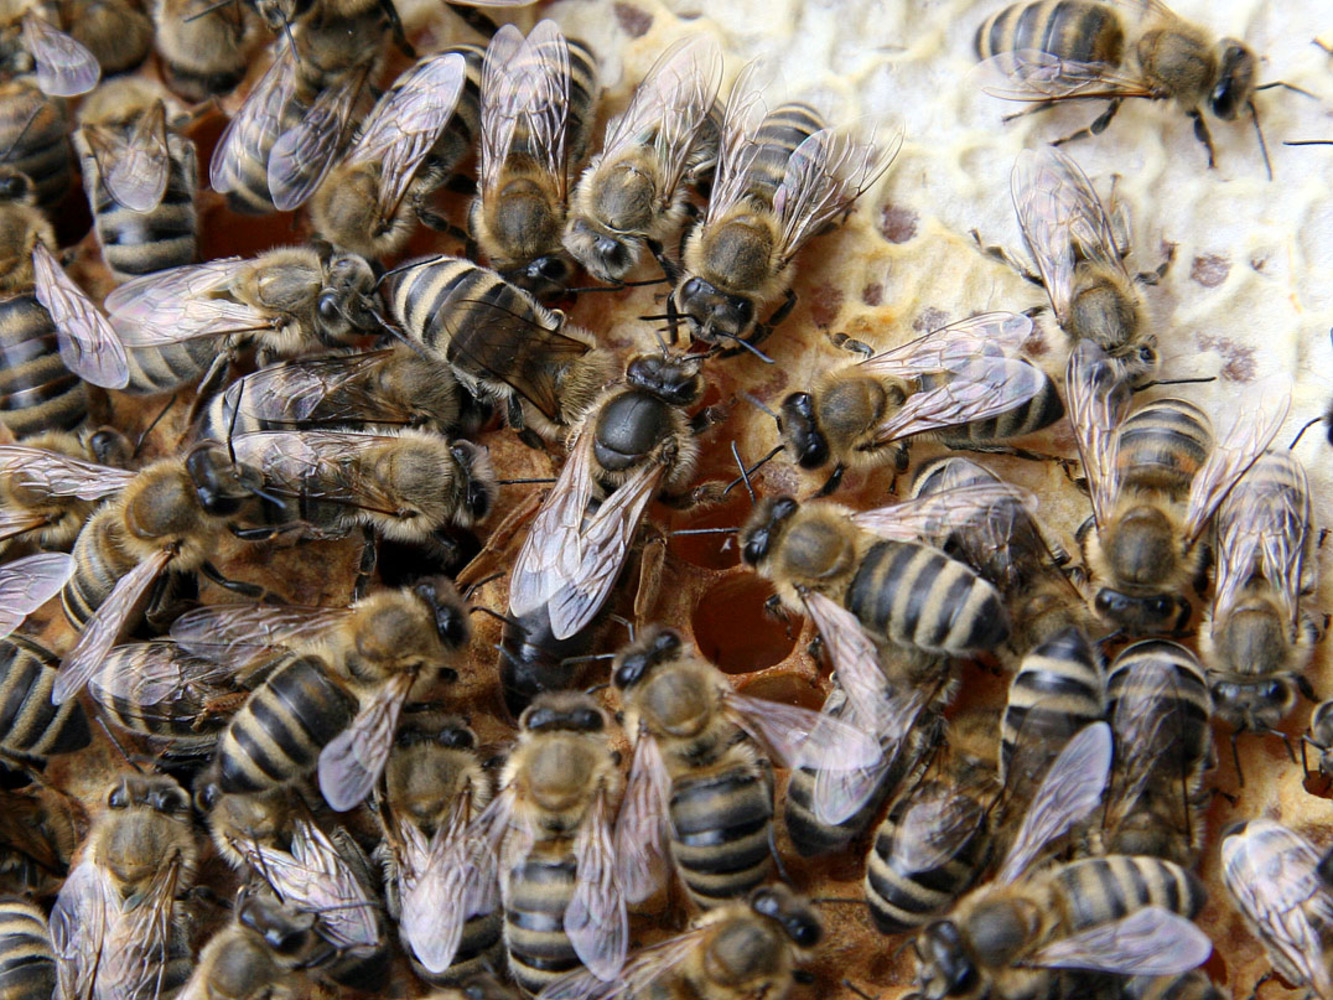 Queen bee with attendants on a honeycomb